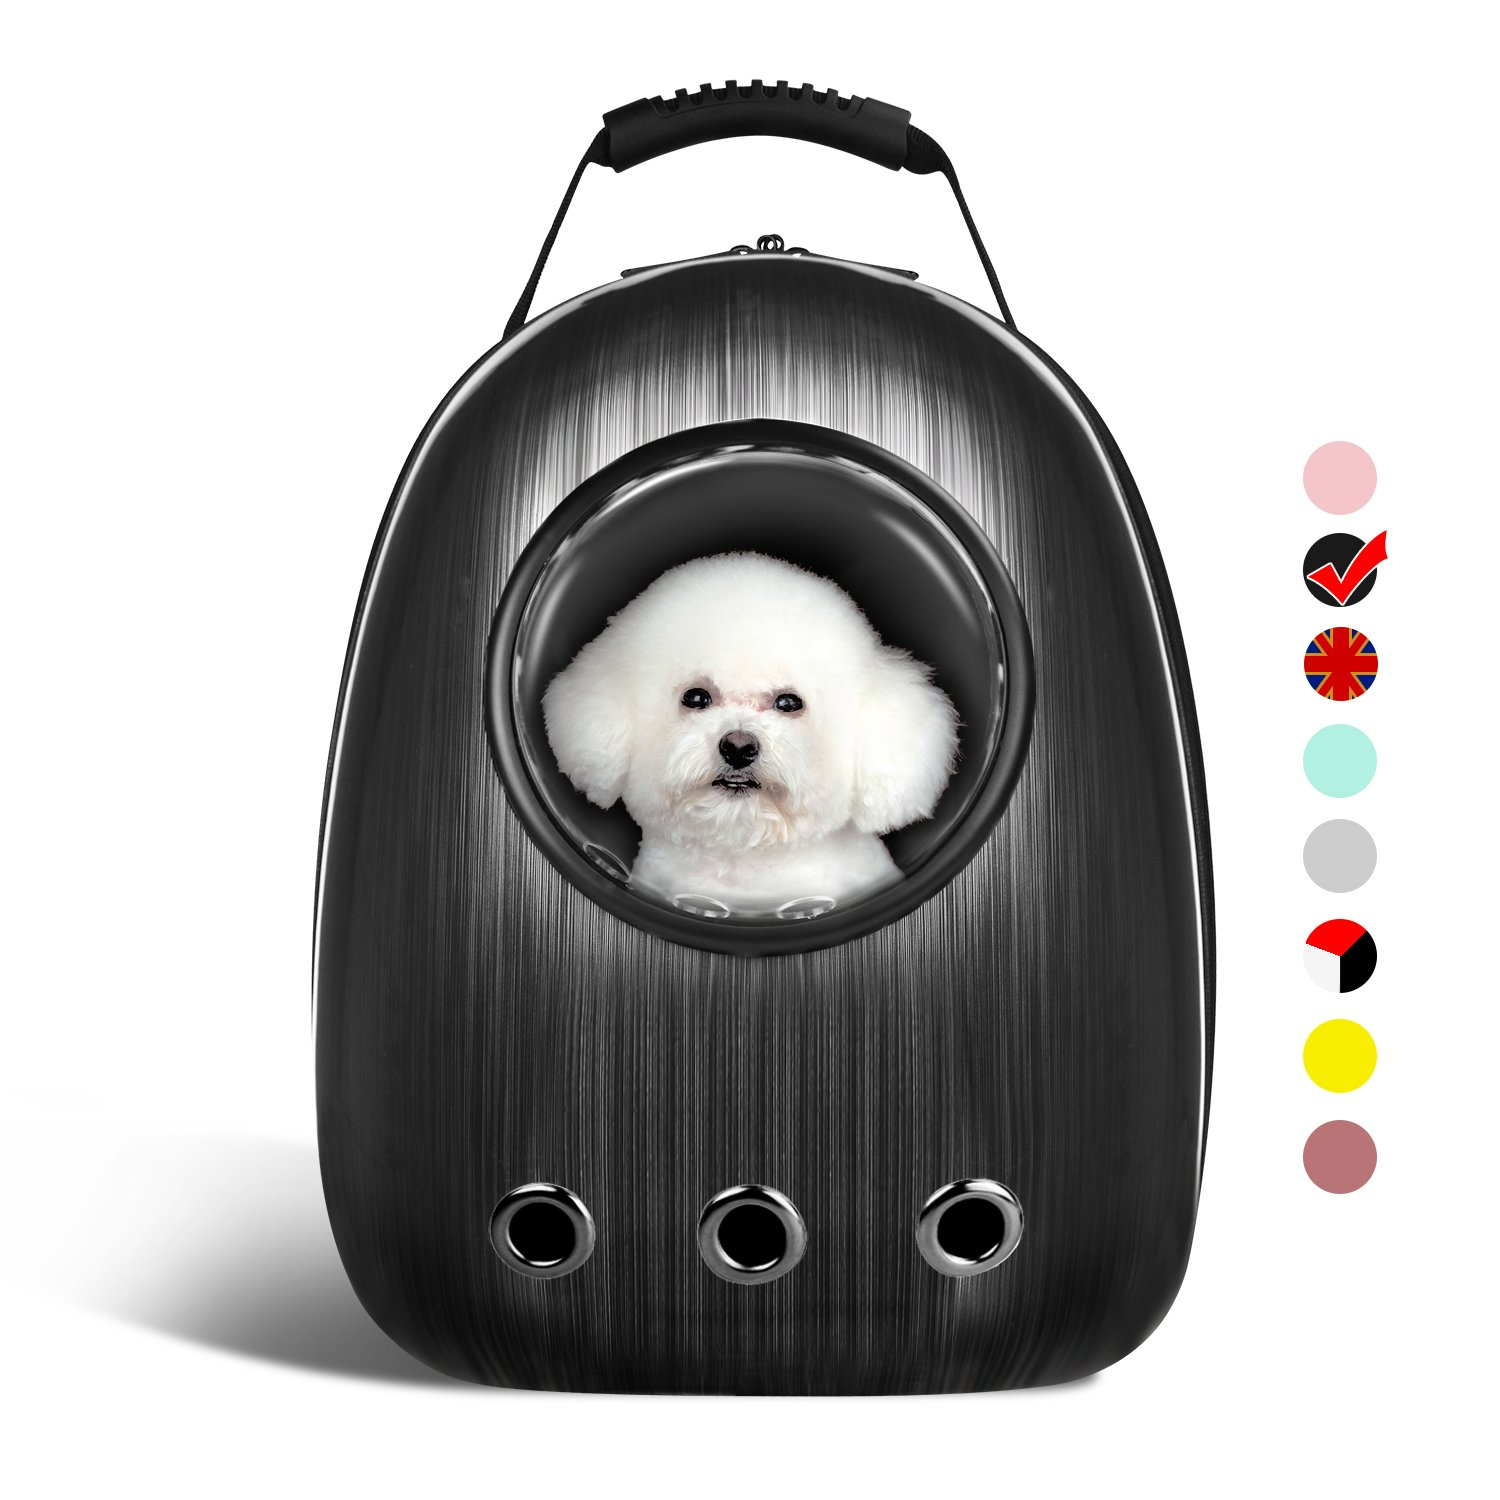 Black AntTech Breathable Pet Travel Backpack Space Capsule Carrier Bag Hiking Bubble Backpack for Cat & Dog Puppy (Black)